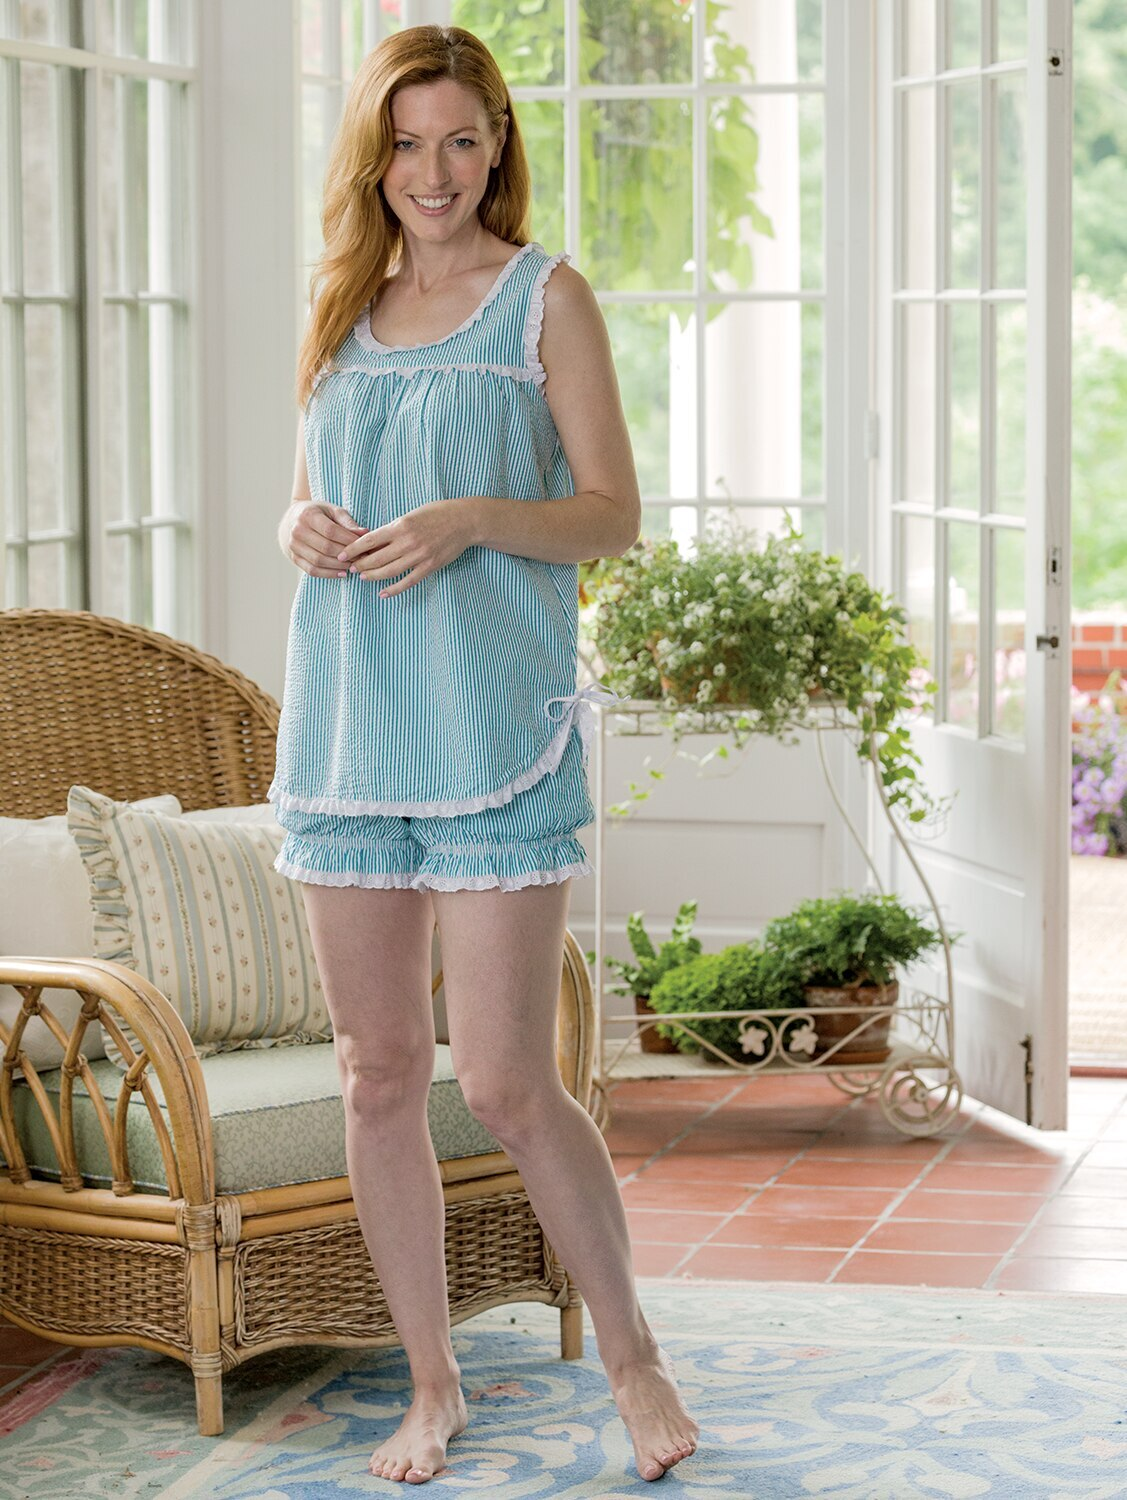 Custom Made Bloomers Can be worn as Pajamas, Underwear, Sleepwear or Sexy Lingerie Bloomers! Custom Plus Size Pajama Bloomers, Women's Fashions and Renaissance and Victorian Clothing Available! Order Online or by Calling